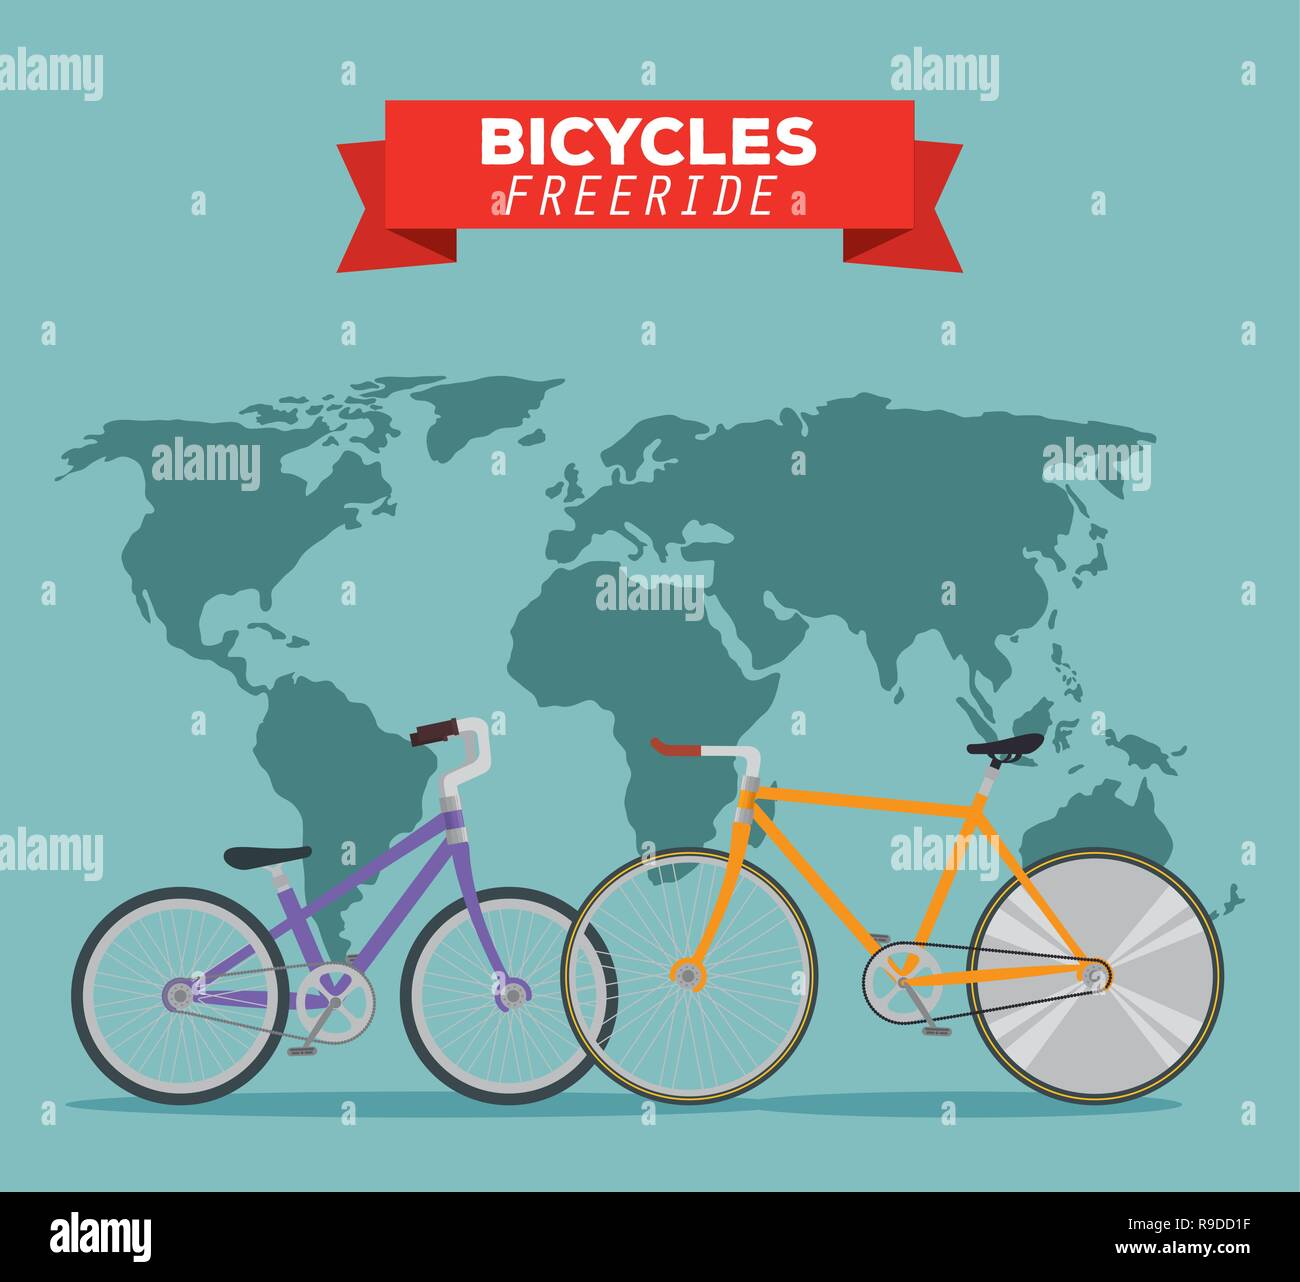 bicycles transport vehicle to freeride in the world - Stock Image